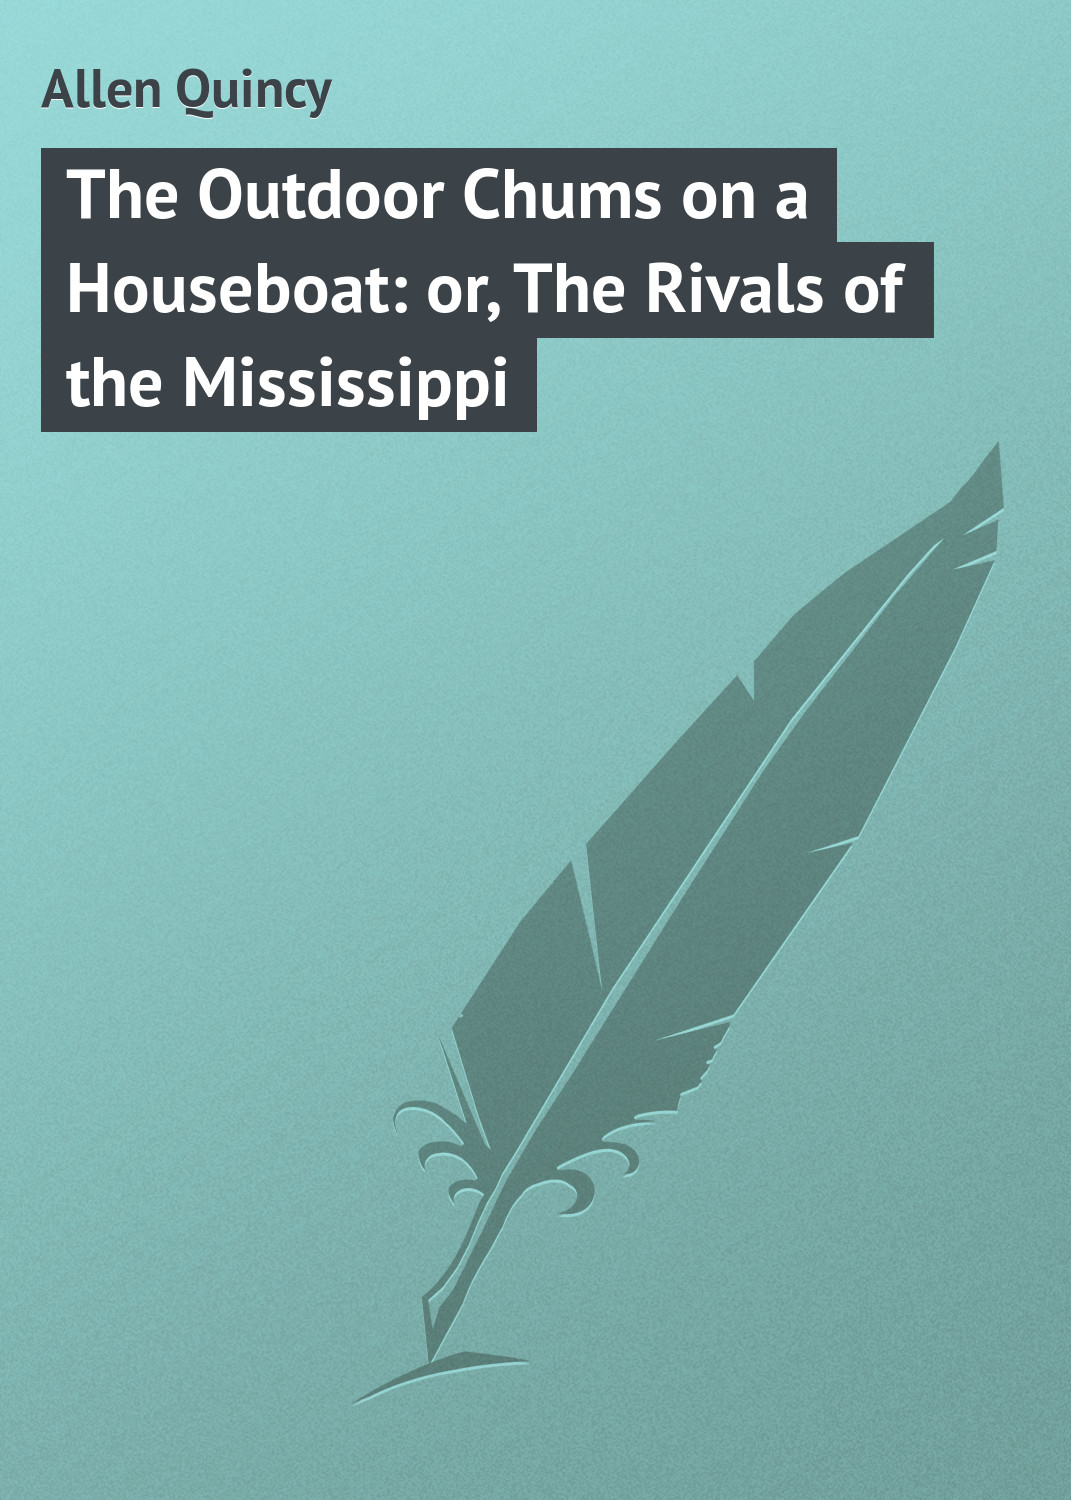 купить Allen Quincy The Outdoor Chums on a Houseboat: or, The Rivals of the Mississippi по цене 0 рублей